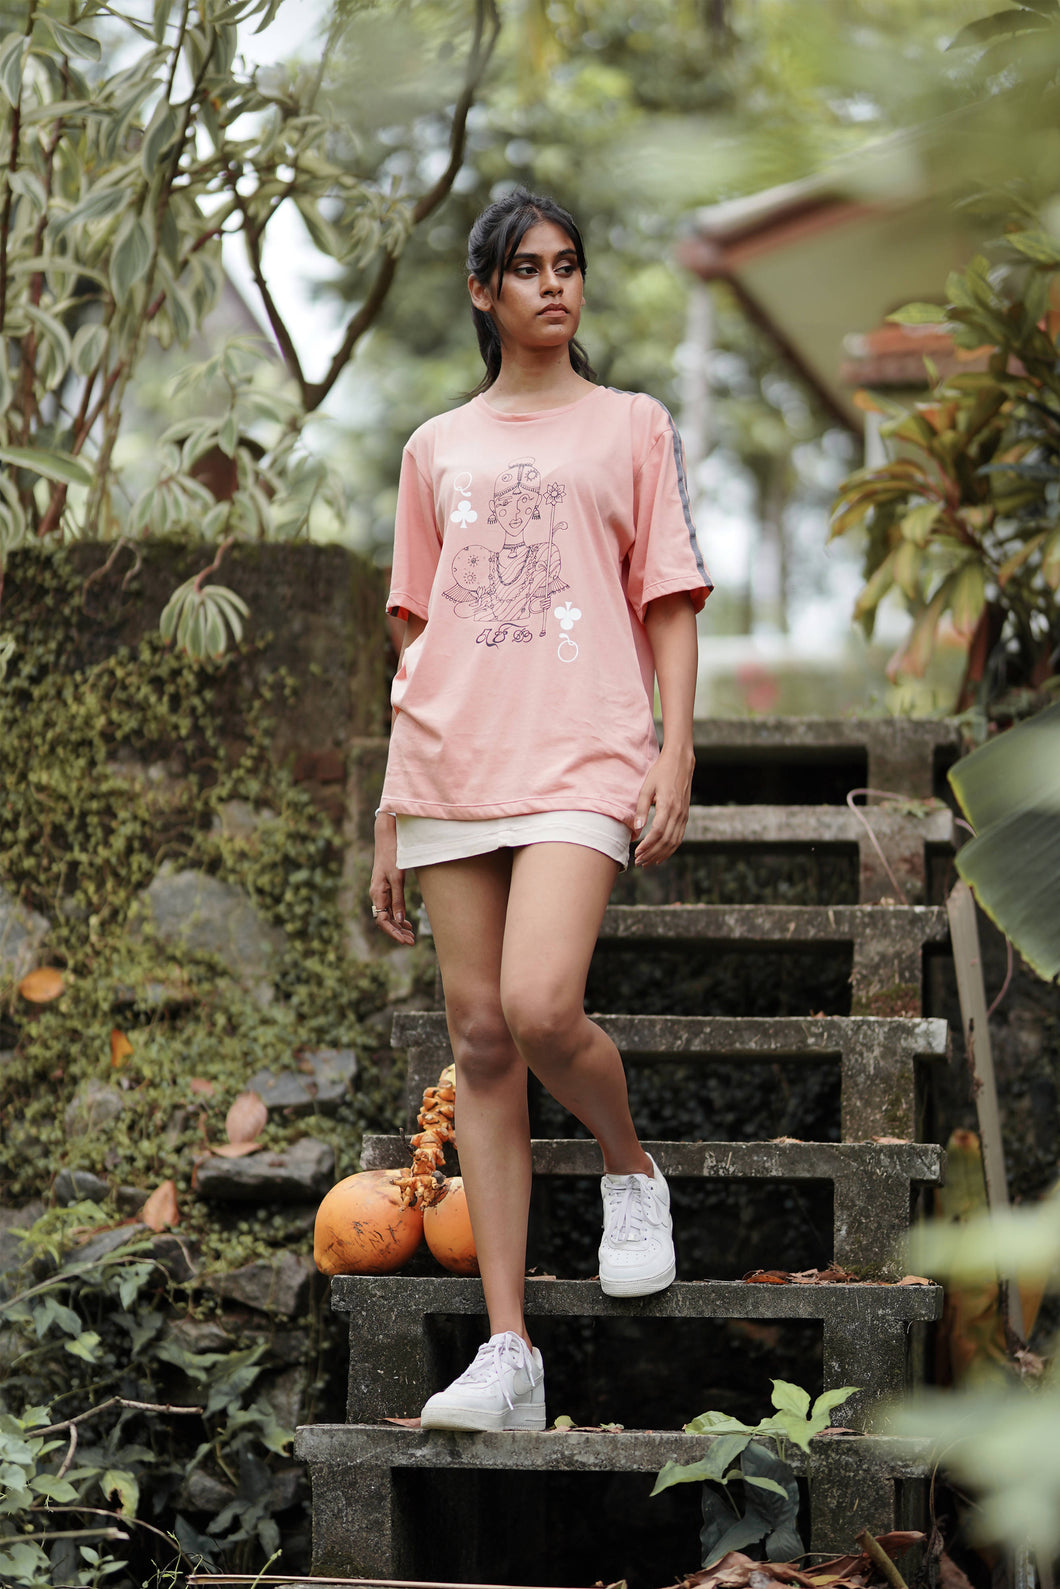 Queen of Taprobana Dusty pink T-shirt (unisex)